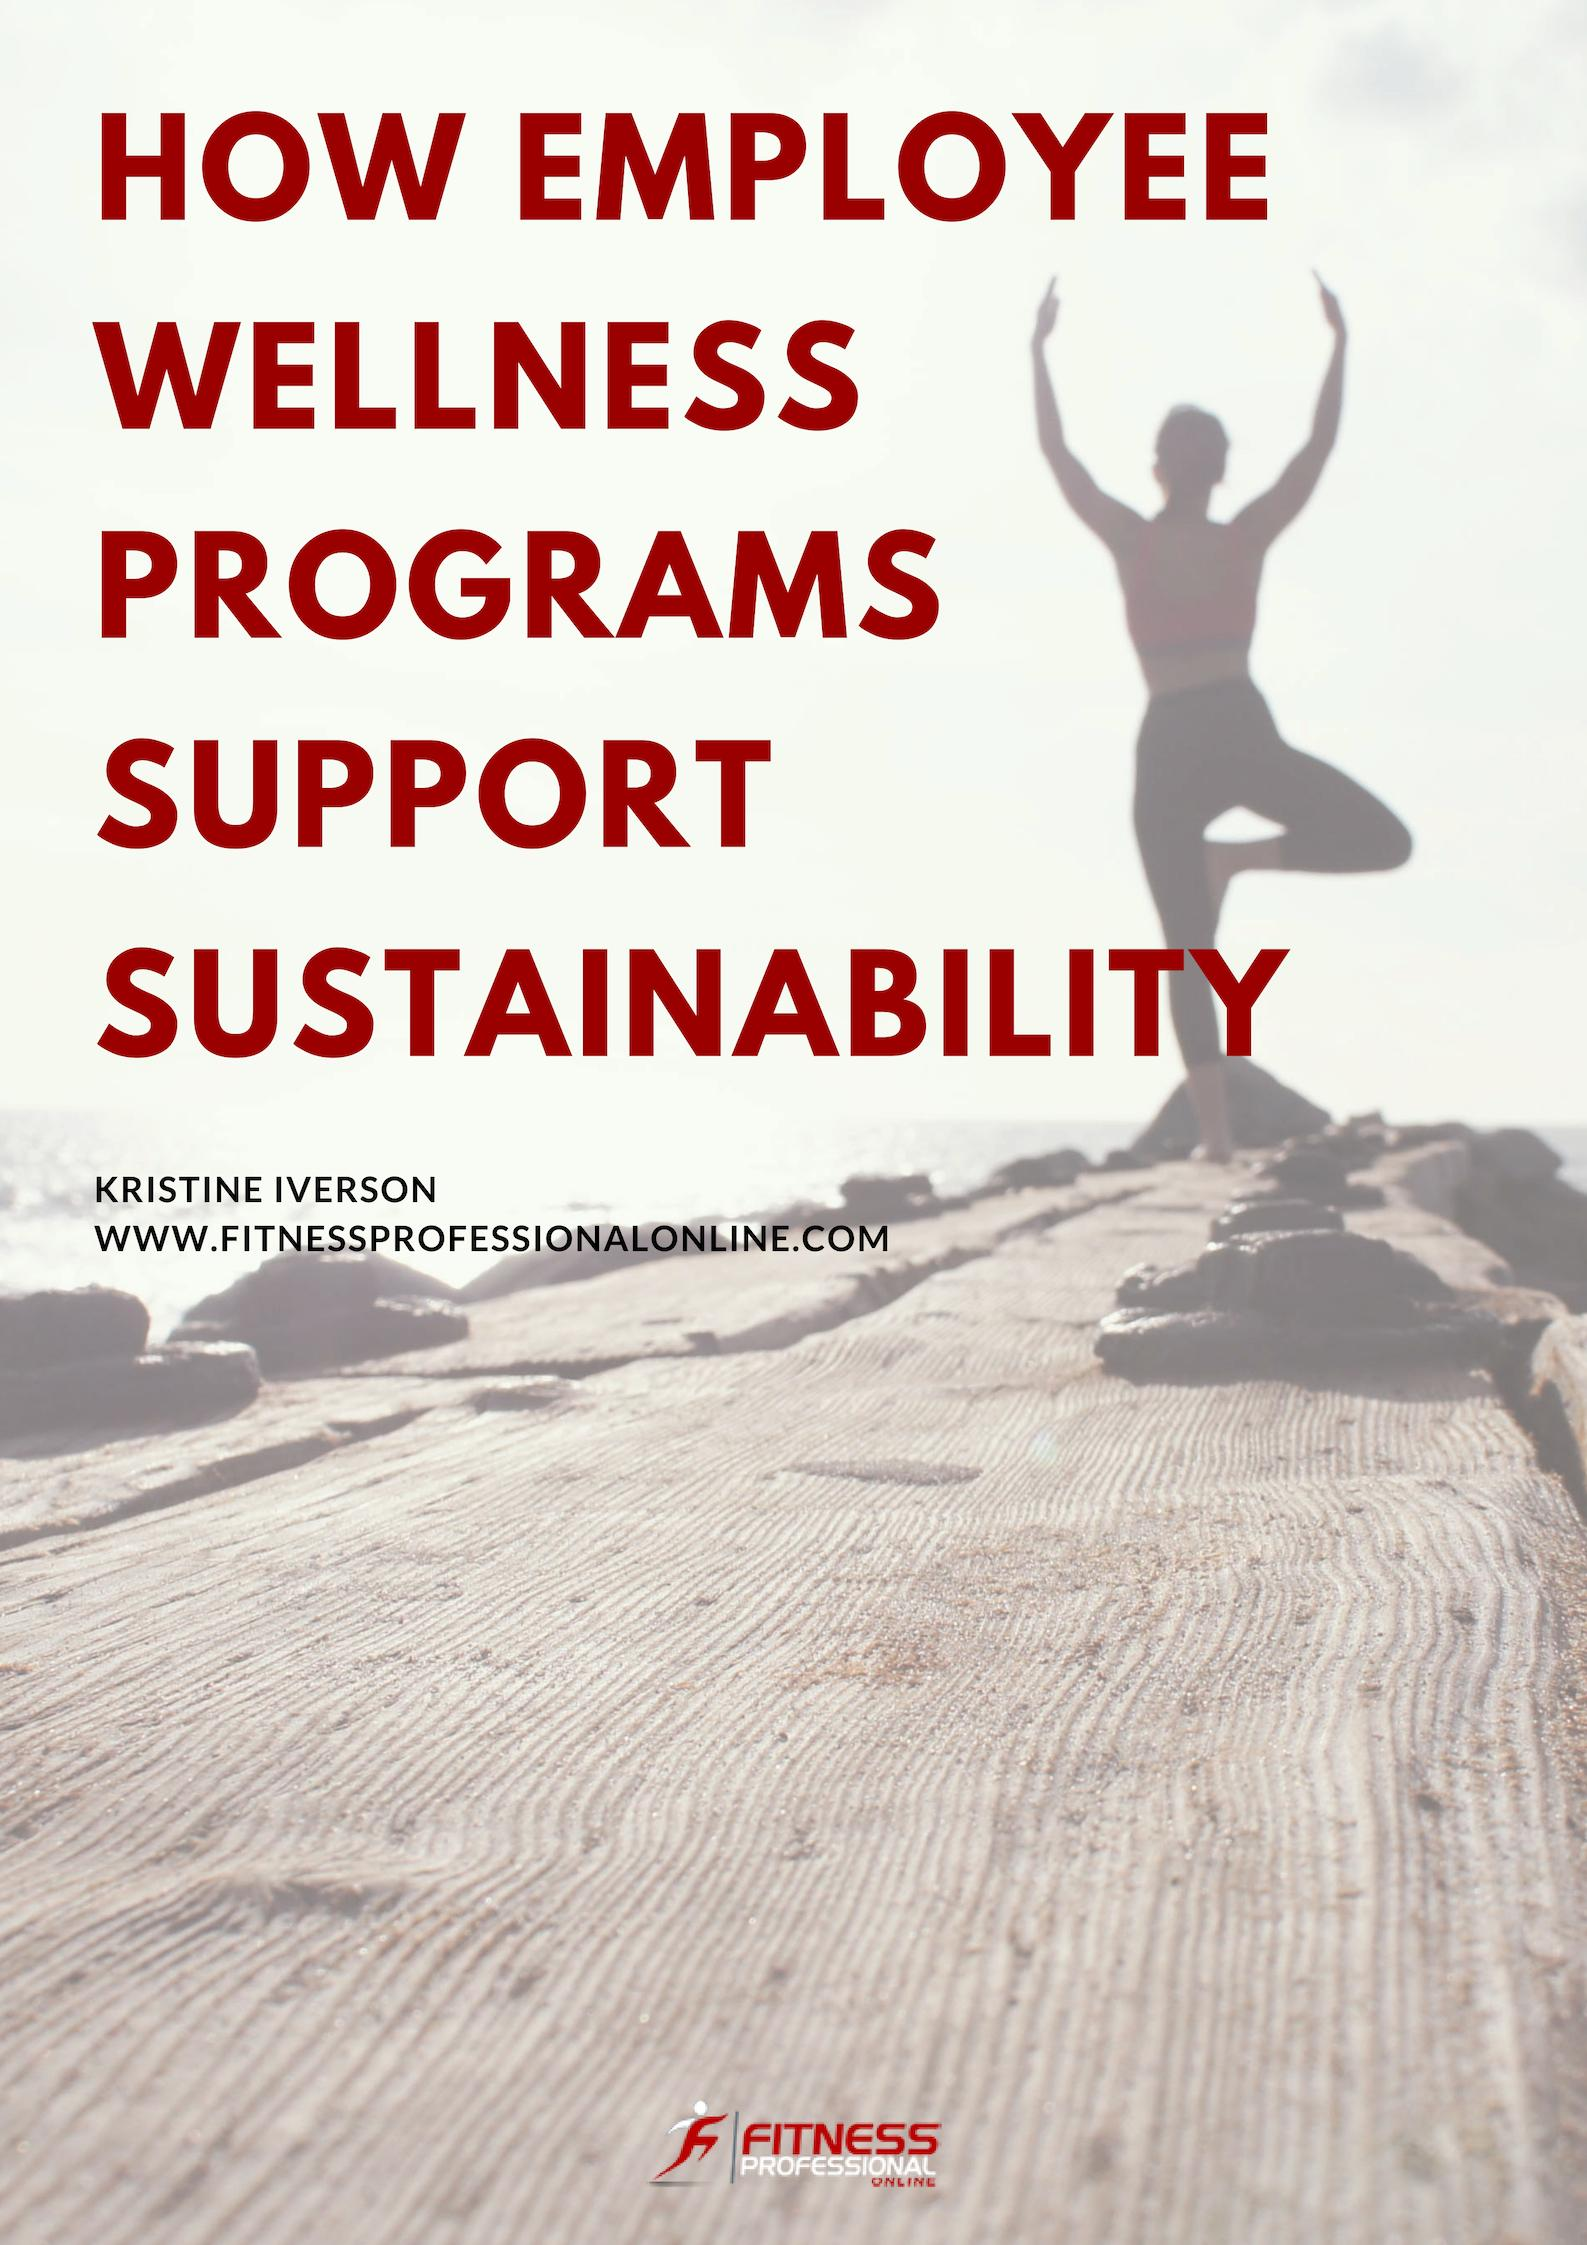 What do employee wellness programs have to do with sustainability?